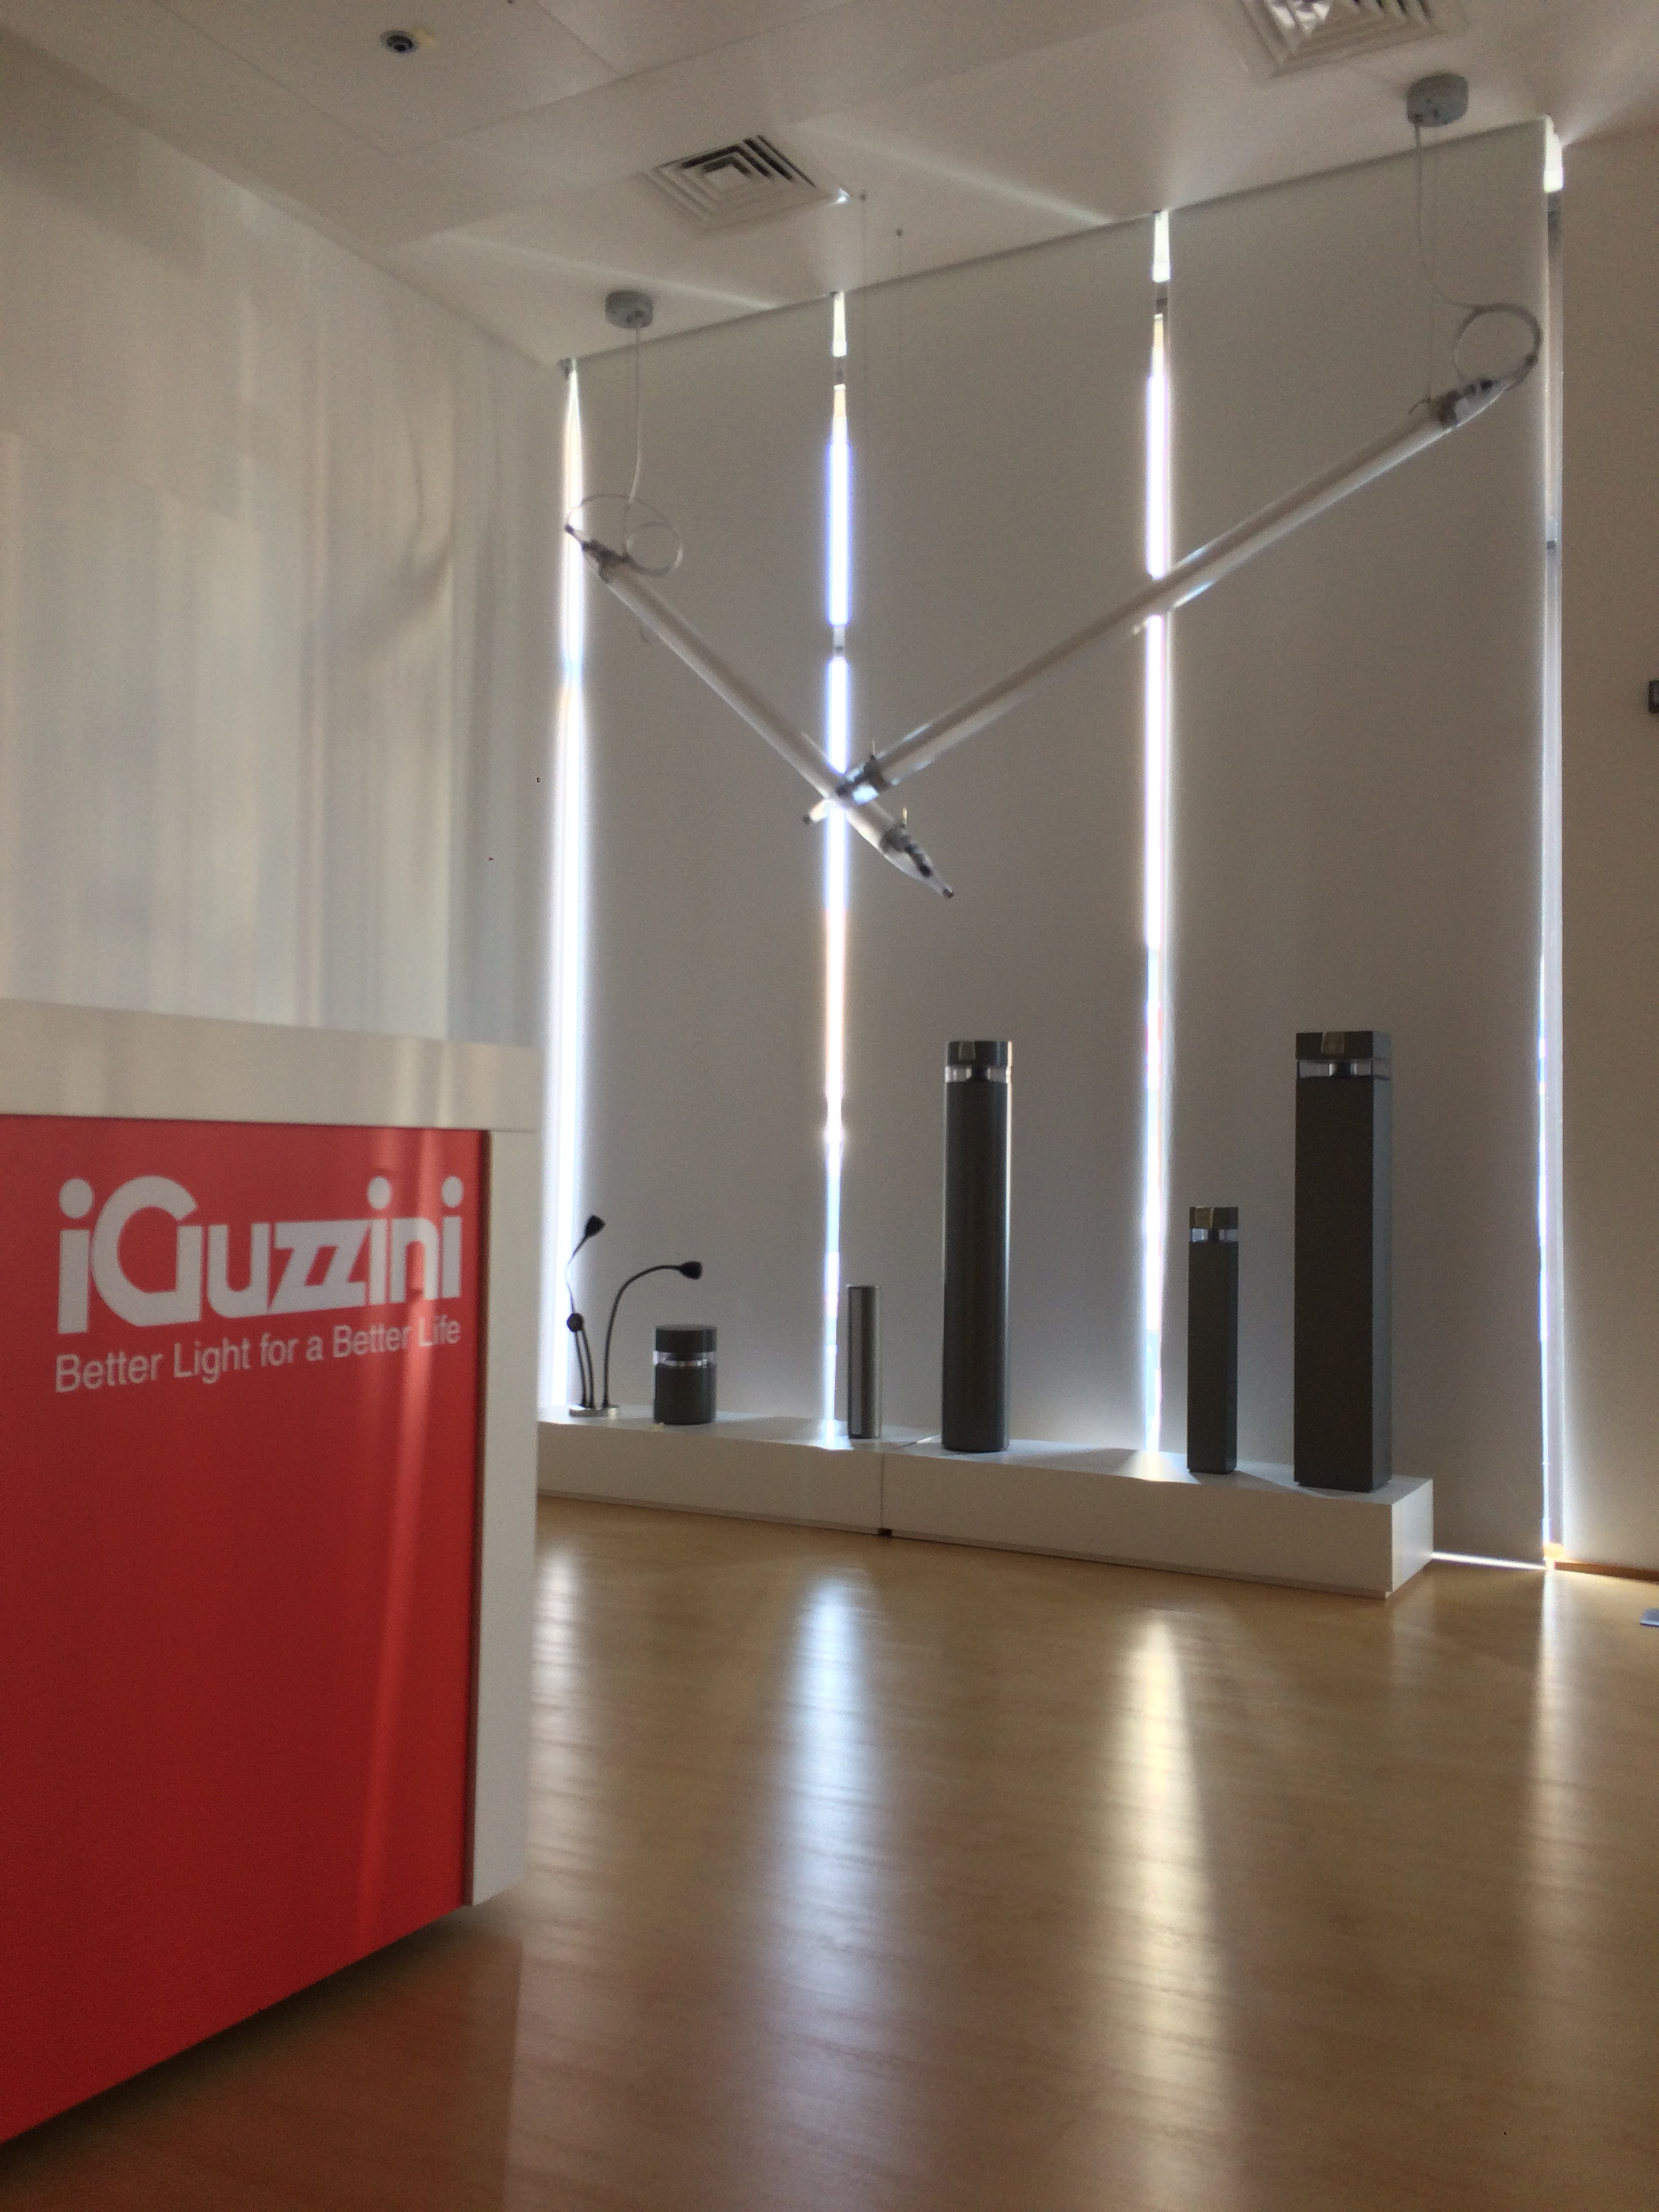 iGuzzini launched a new Light Experience and Training Centre in Bahrain